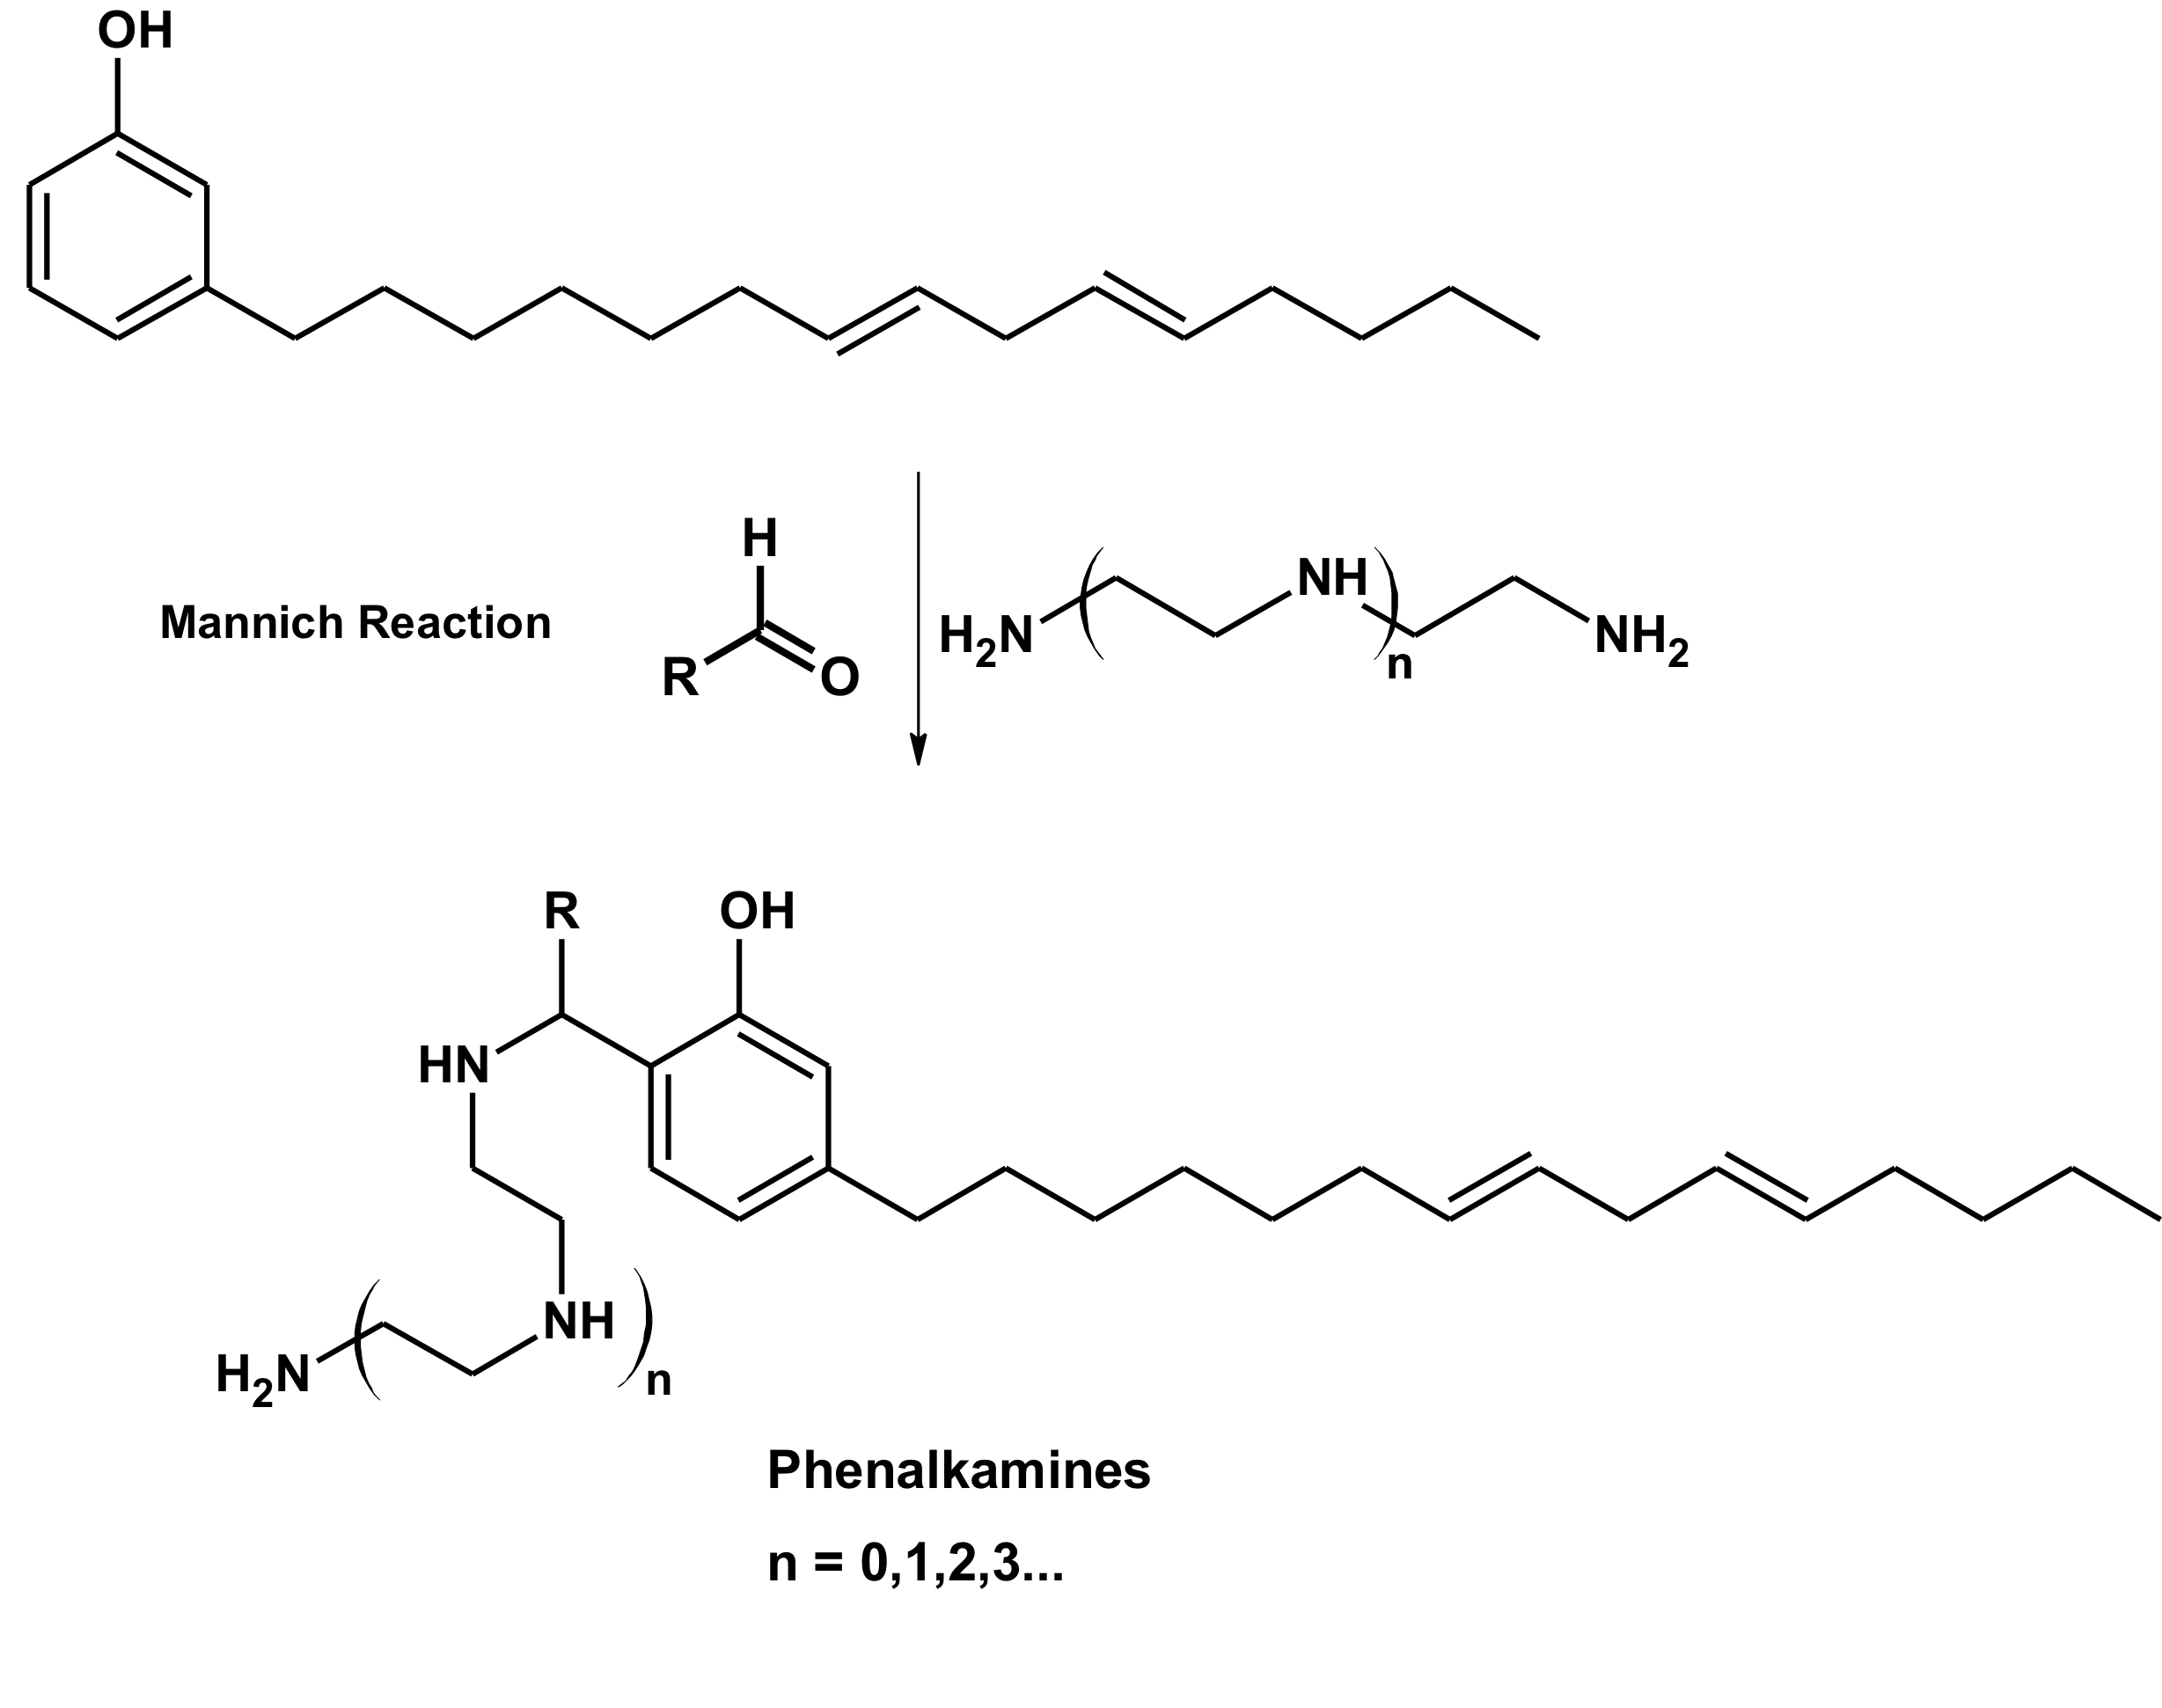 phenalkamines diagram - mannich reaction